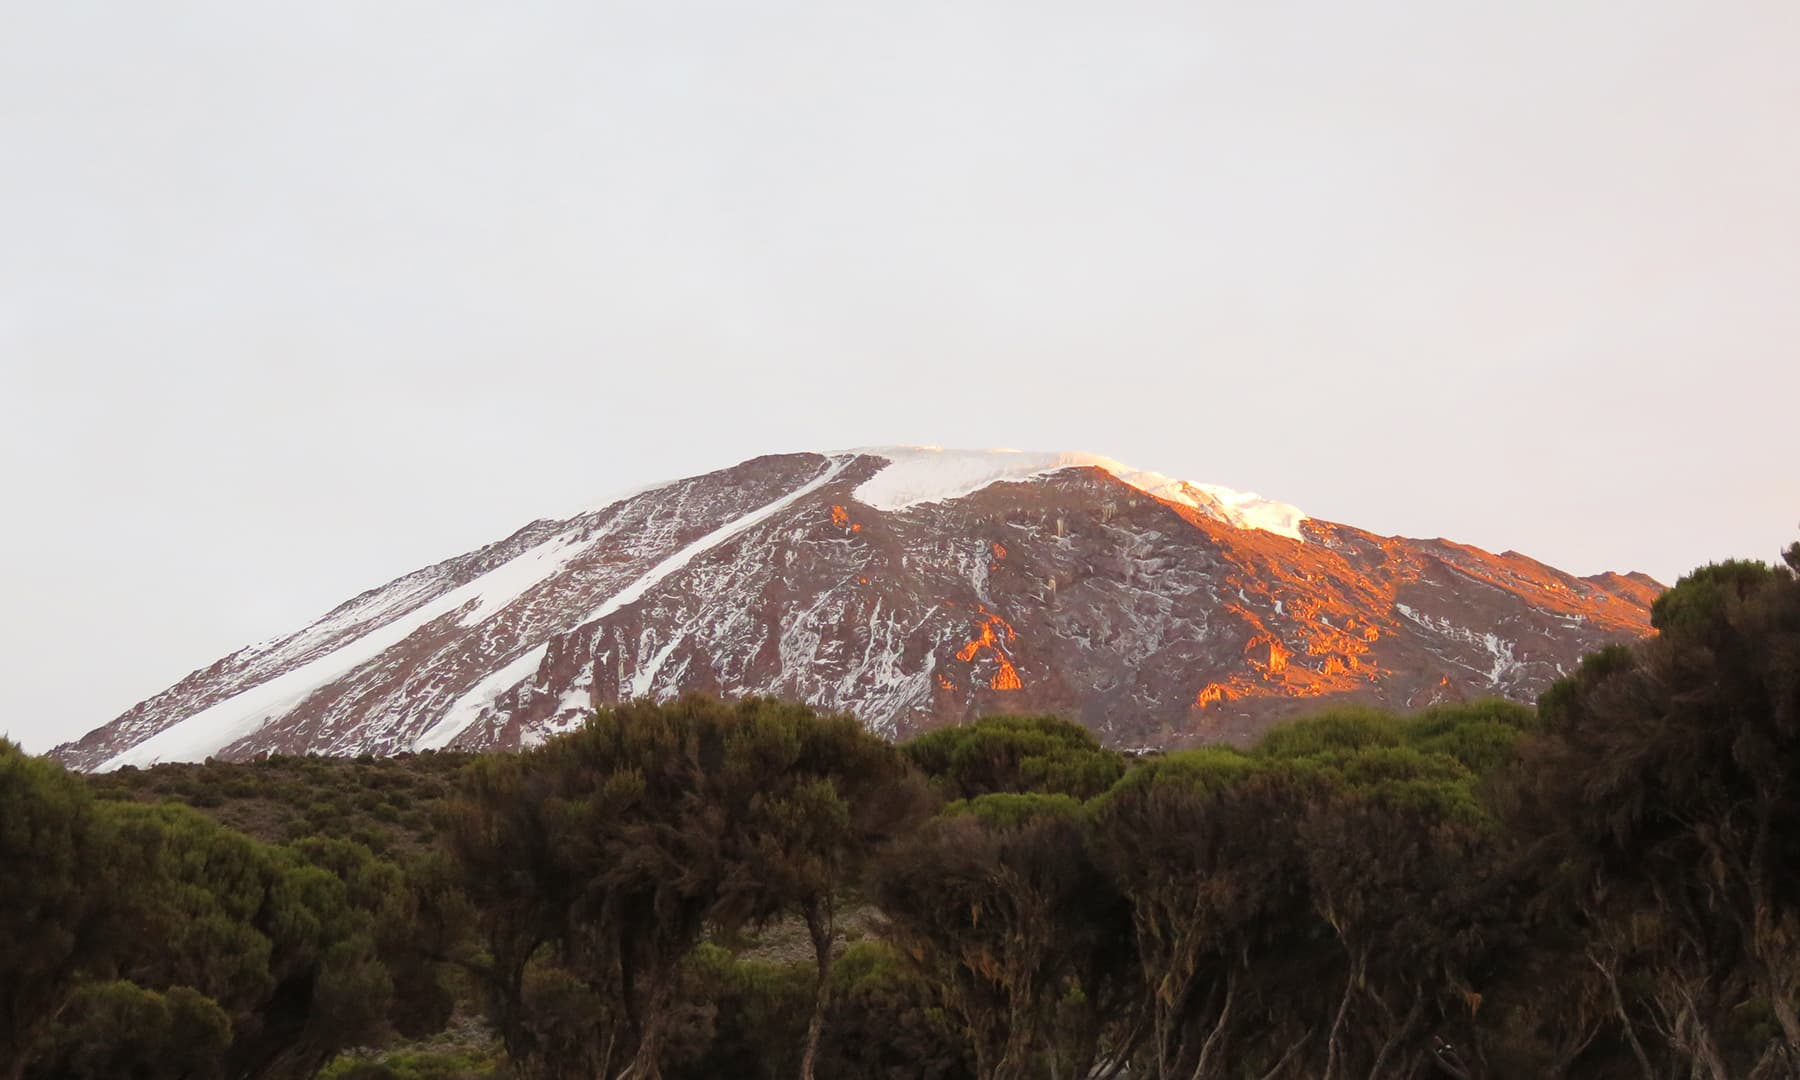 The morning after – waking up to a great view: sunlight reflecting off Kilimanjaro.